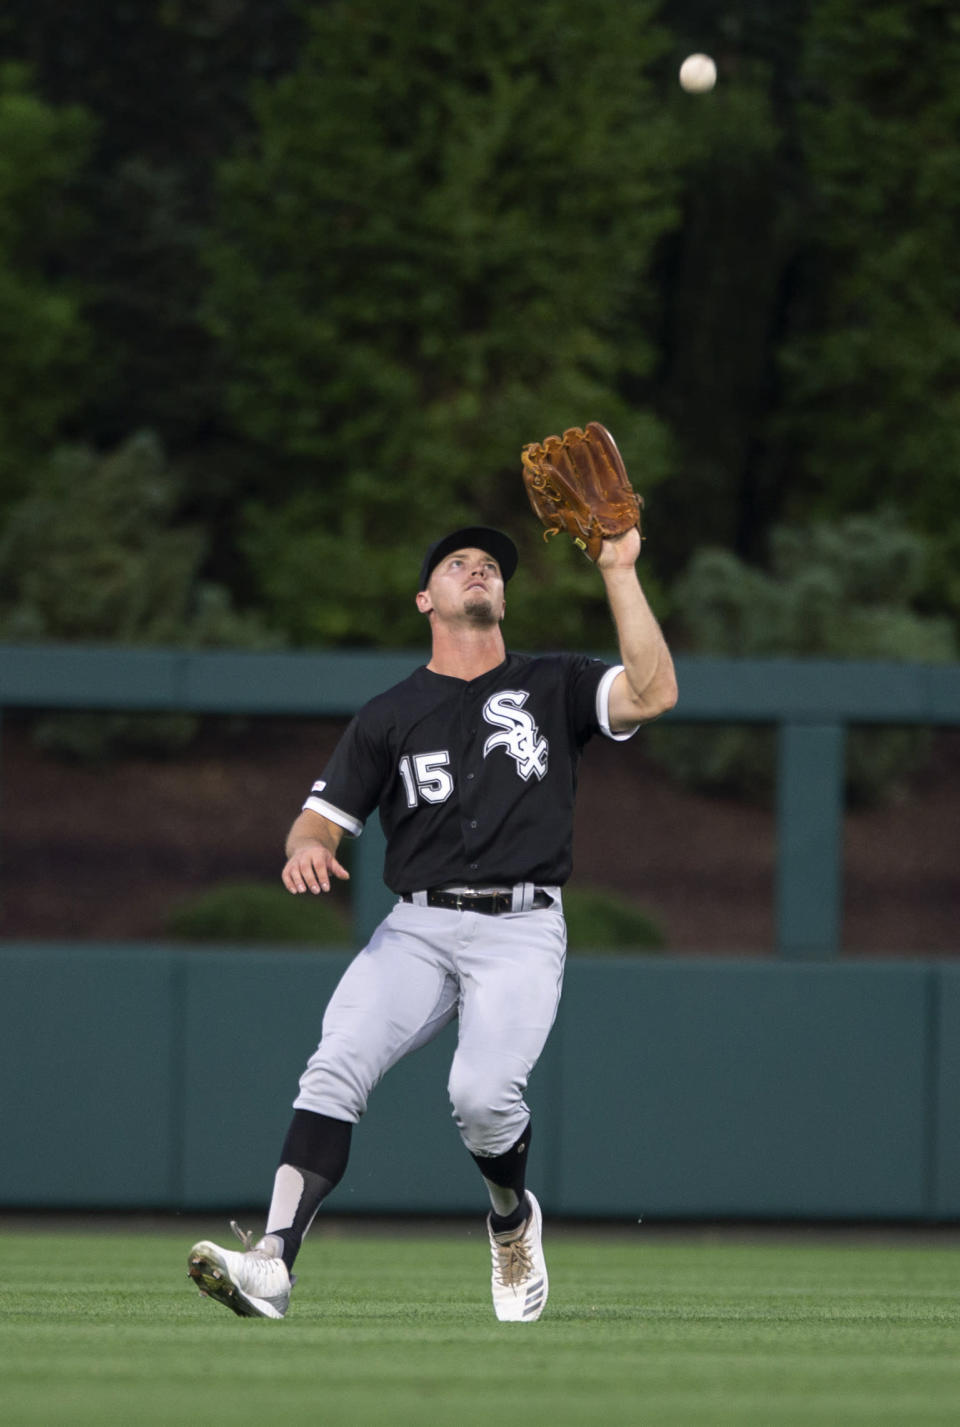 Chicago White Sox center fielder Adam Engel catches a pop fly by Philadelphia Phillies' Cesar Hernandez during the third inning of a baseball game Friday, Aug. 2, 2019, in Philadelphia. (AP Photo/Laurence Kesterson)